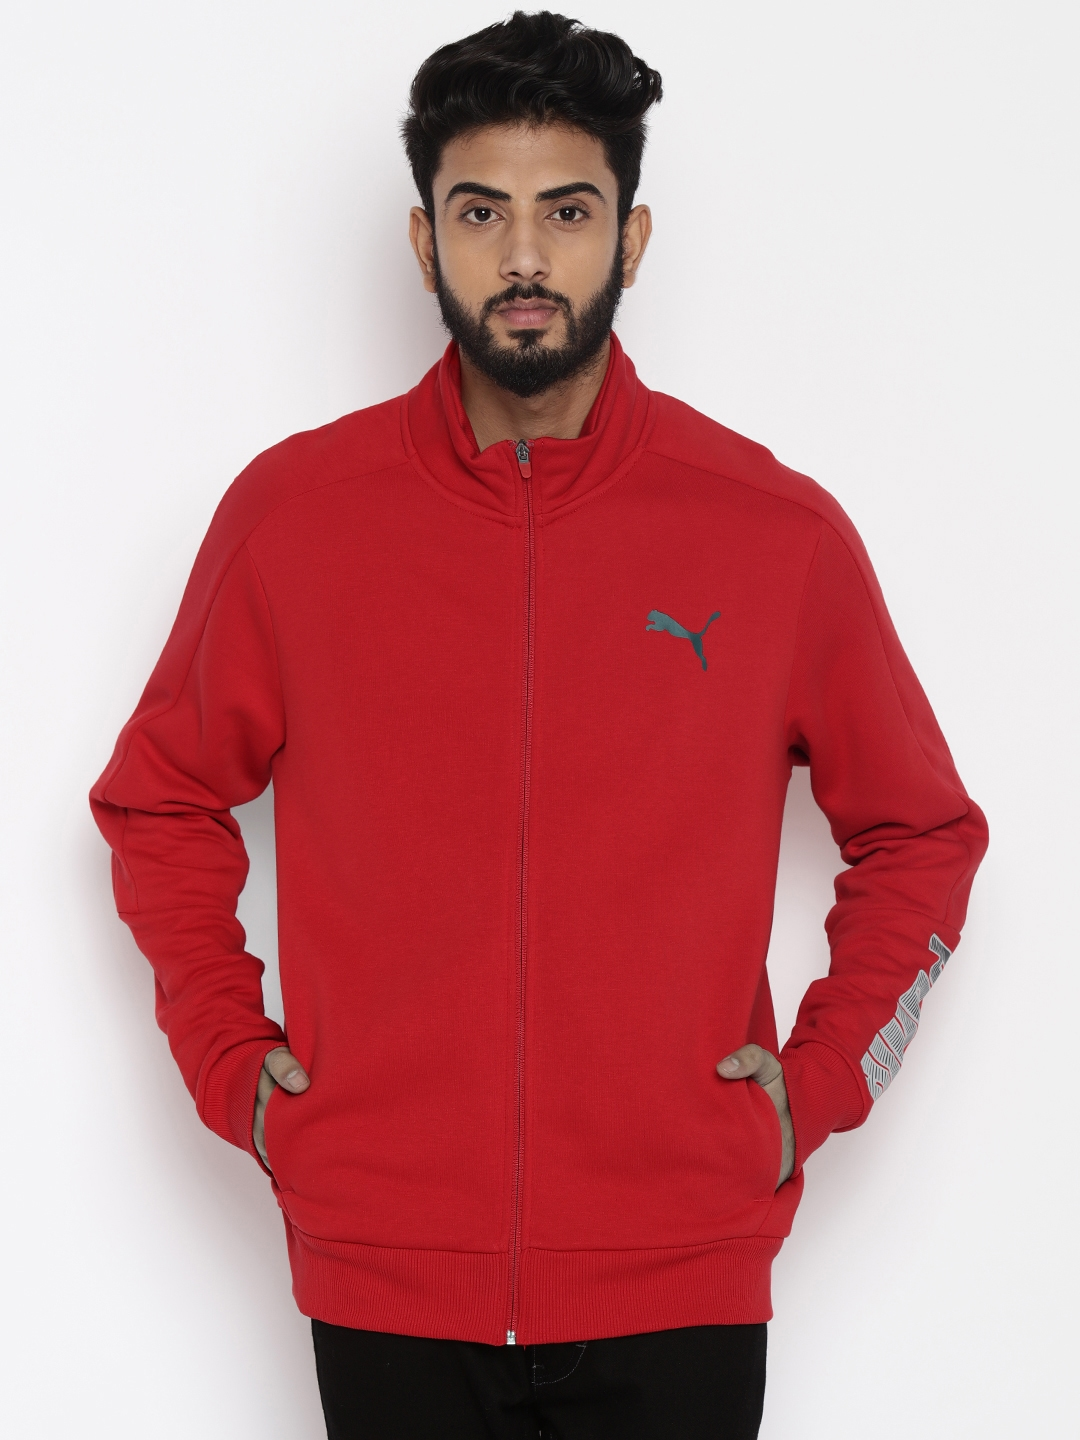 p jumper red jacket ferrari global l up mens inflow s sweat res puma zip sf inflowcomponent content technicalissues hooded